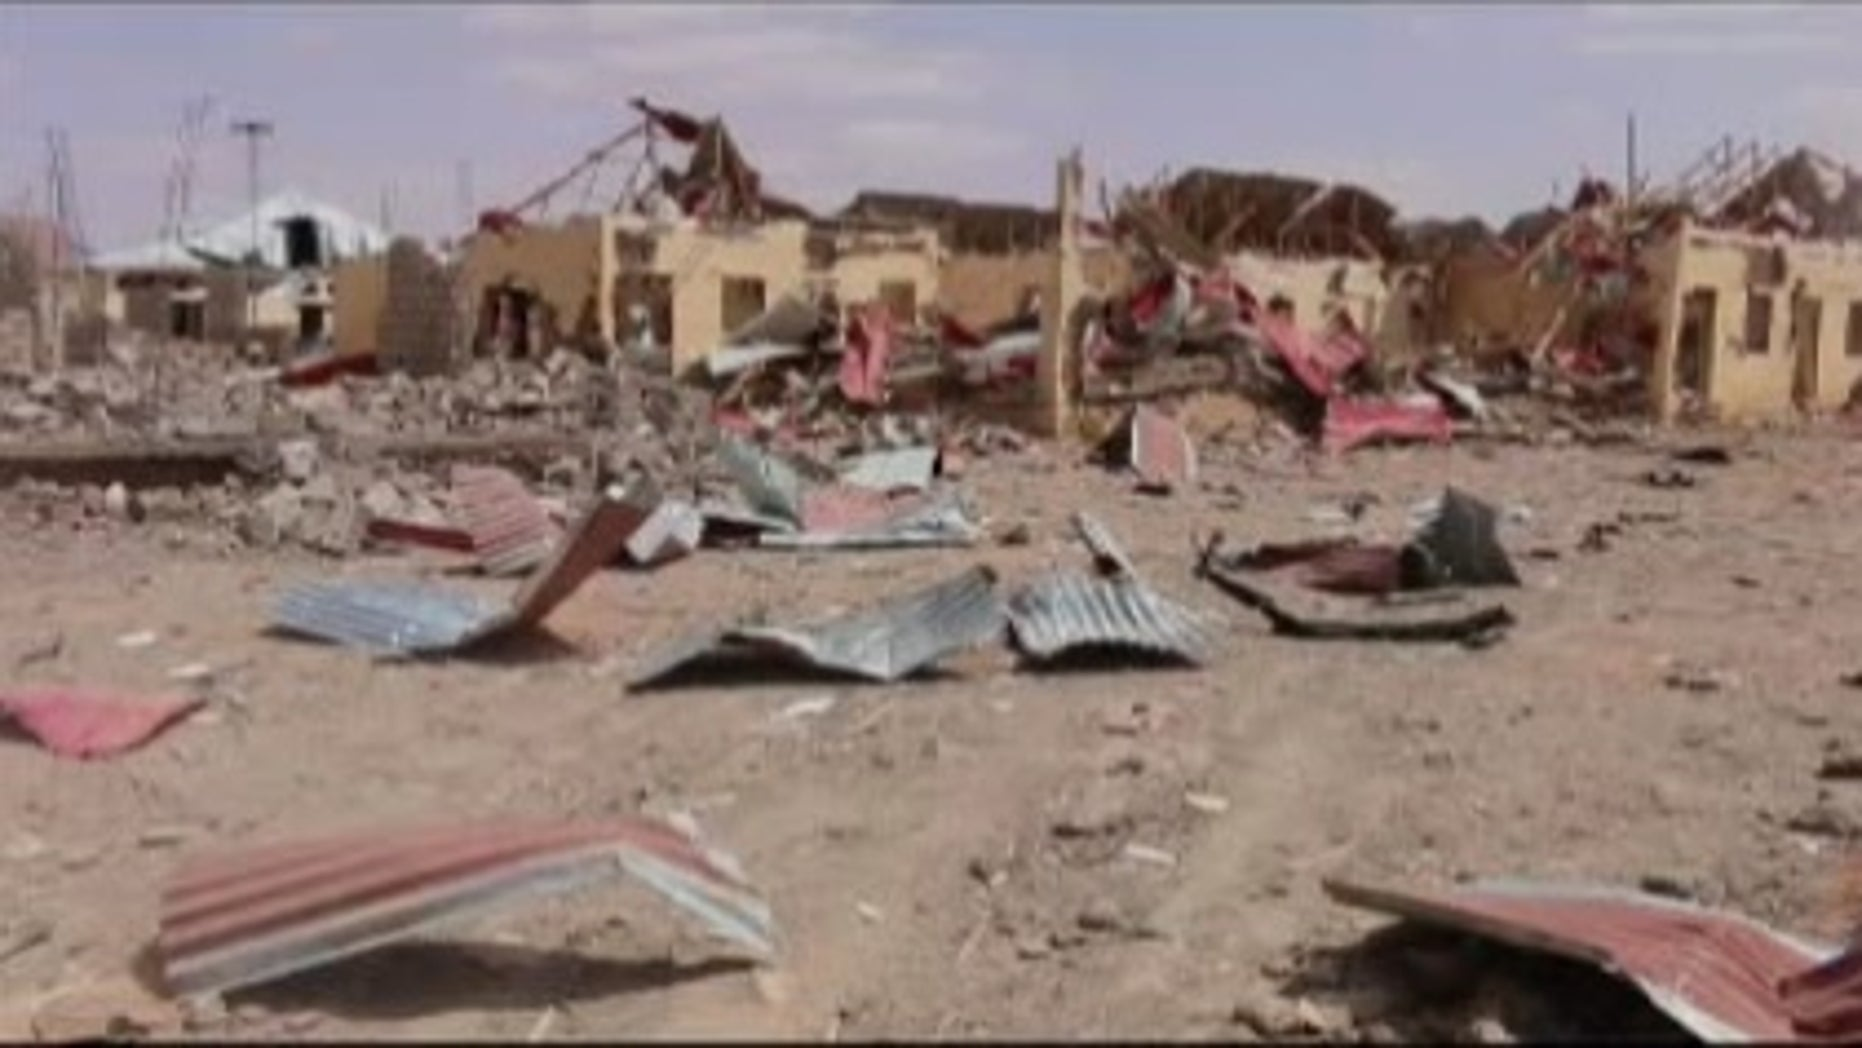 The site of one of the explosions in Somalia.